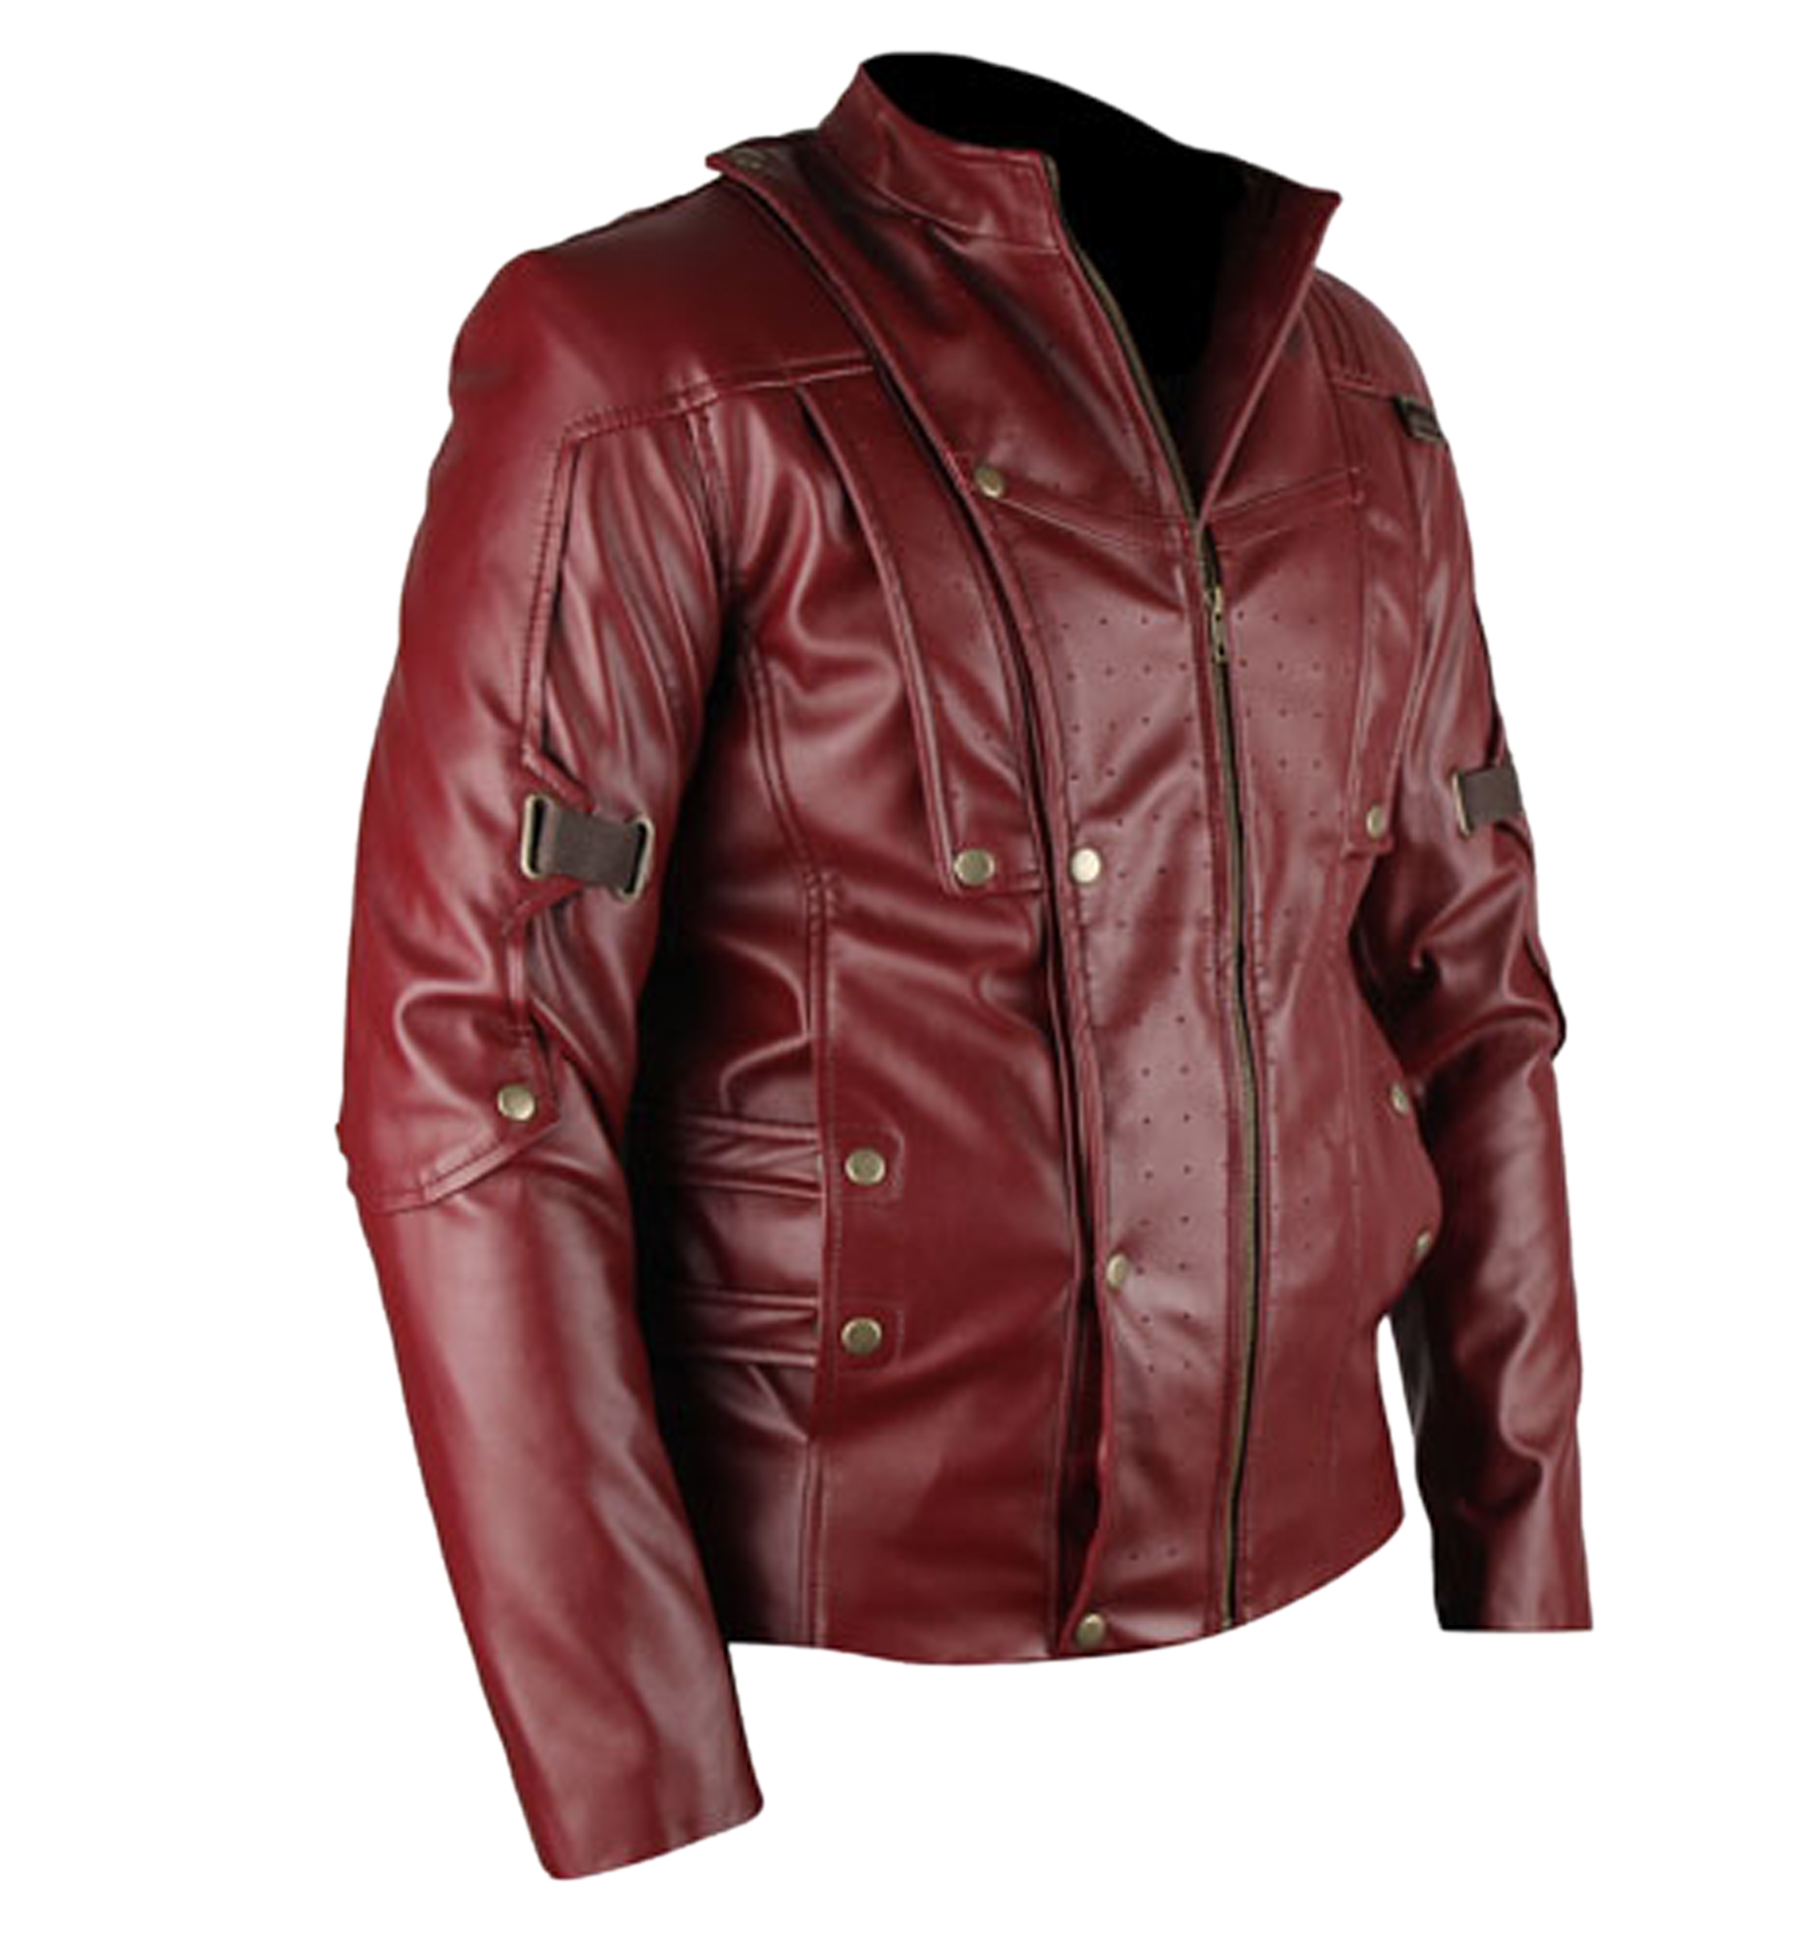 New-Star-Lord-Guardians-Of-The-Galaxy-Leather-Jacket-3-1